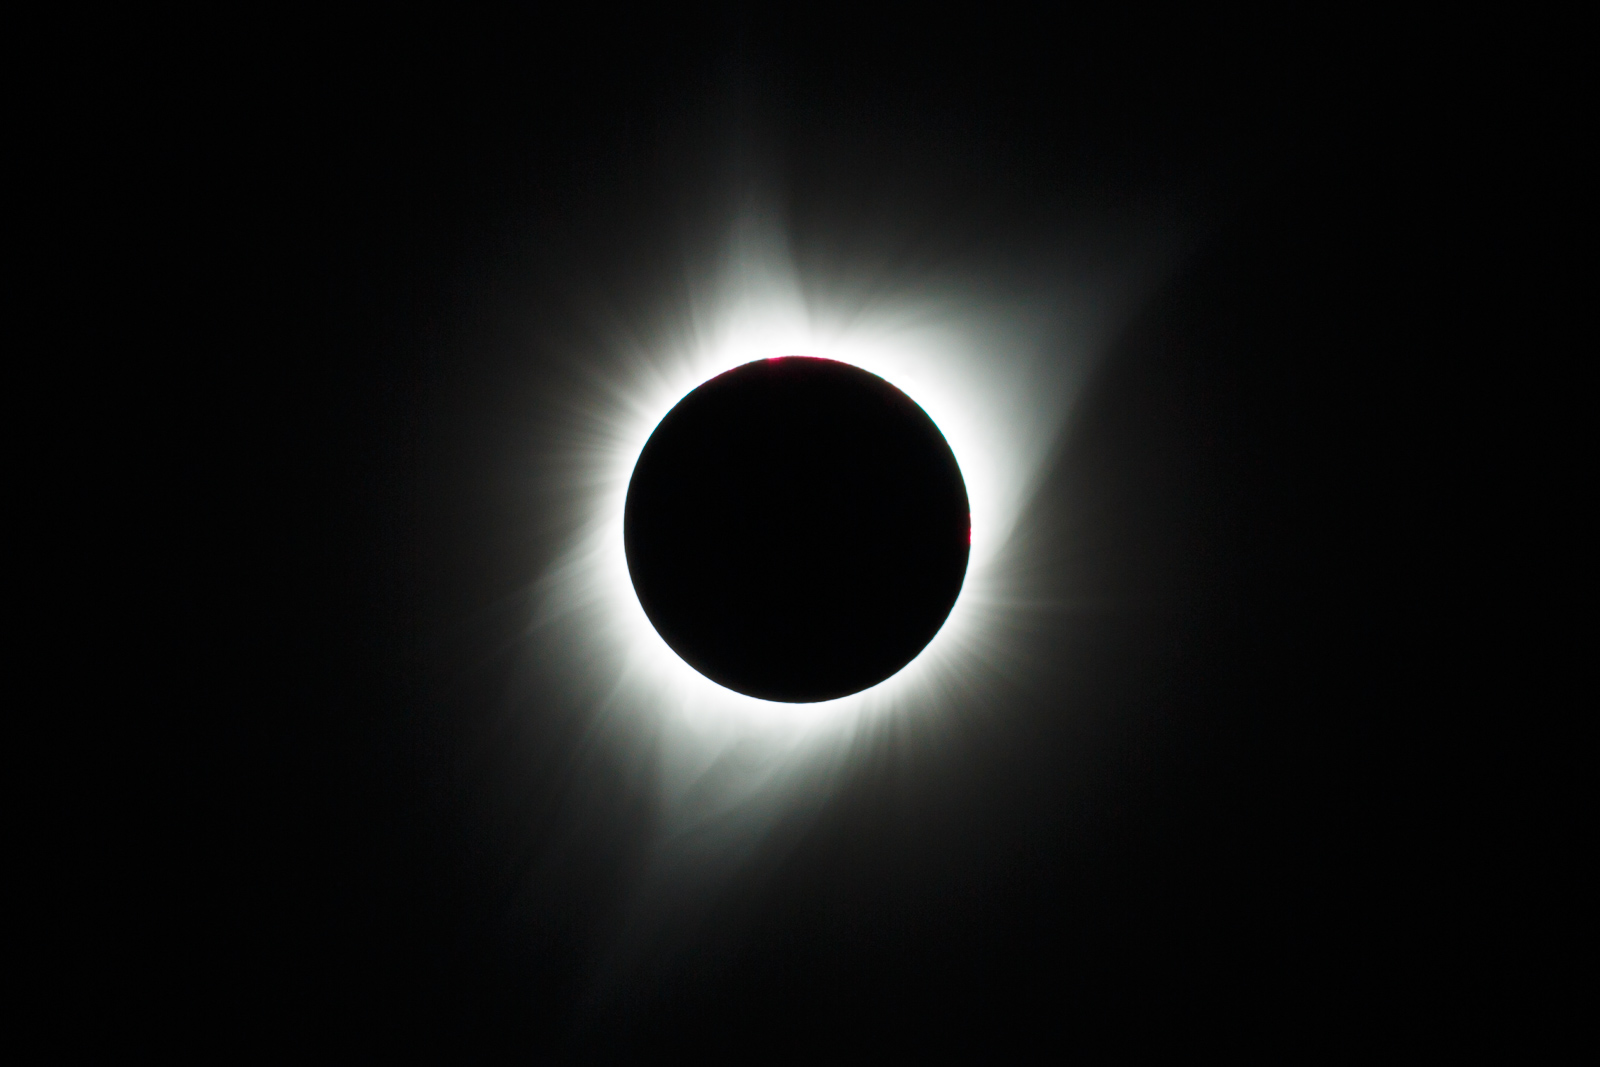 Eclipse (13x19)(8x10)